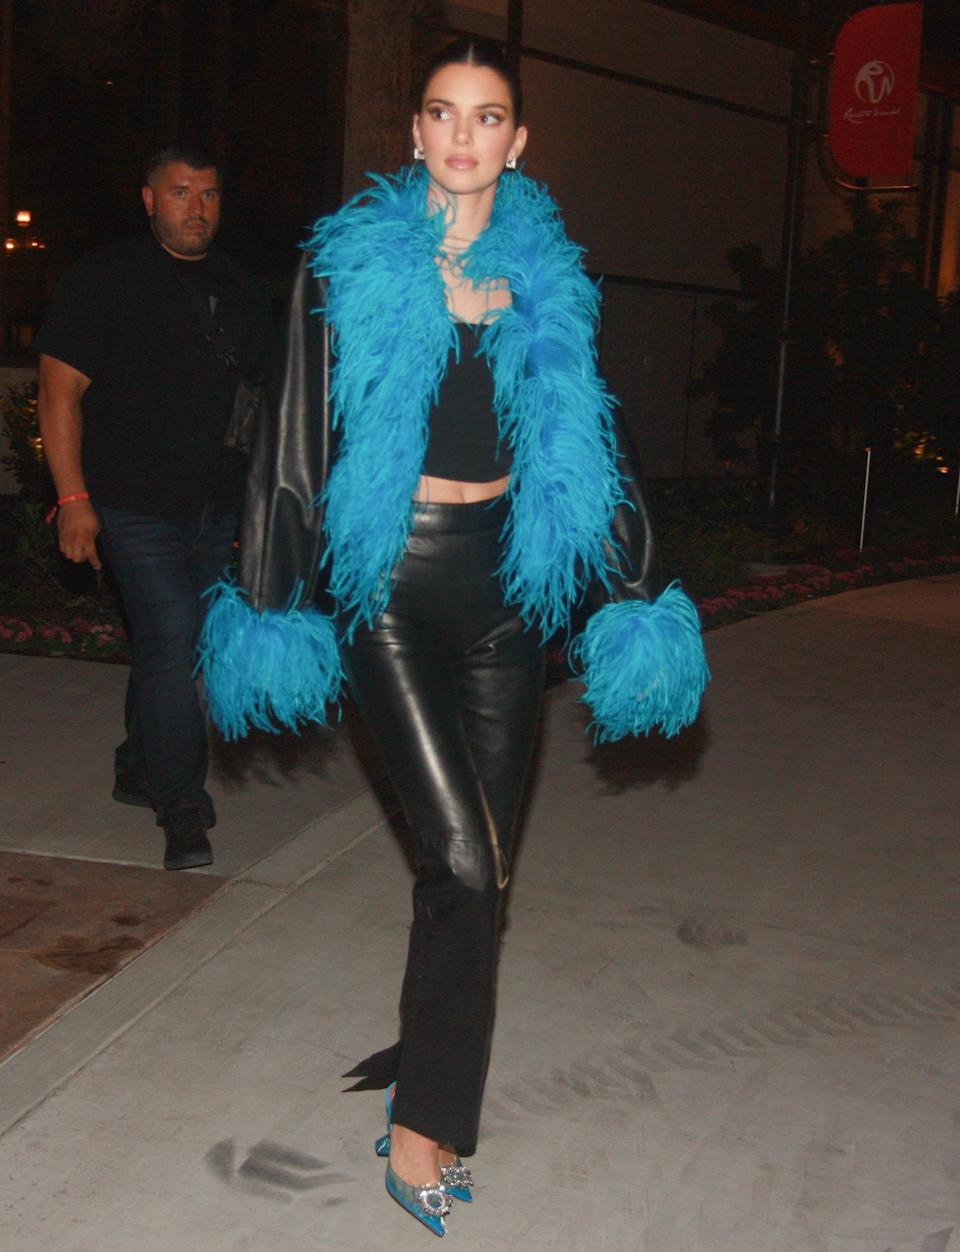 <p>Kendall Jenner accessorizes her leather outfit with a blue feather boa while on her way to the Flamingo hotel in Las Vegas on June 25.</p>